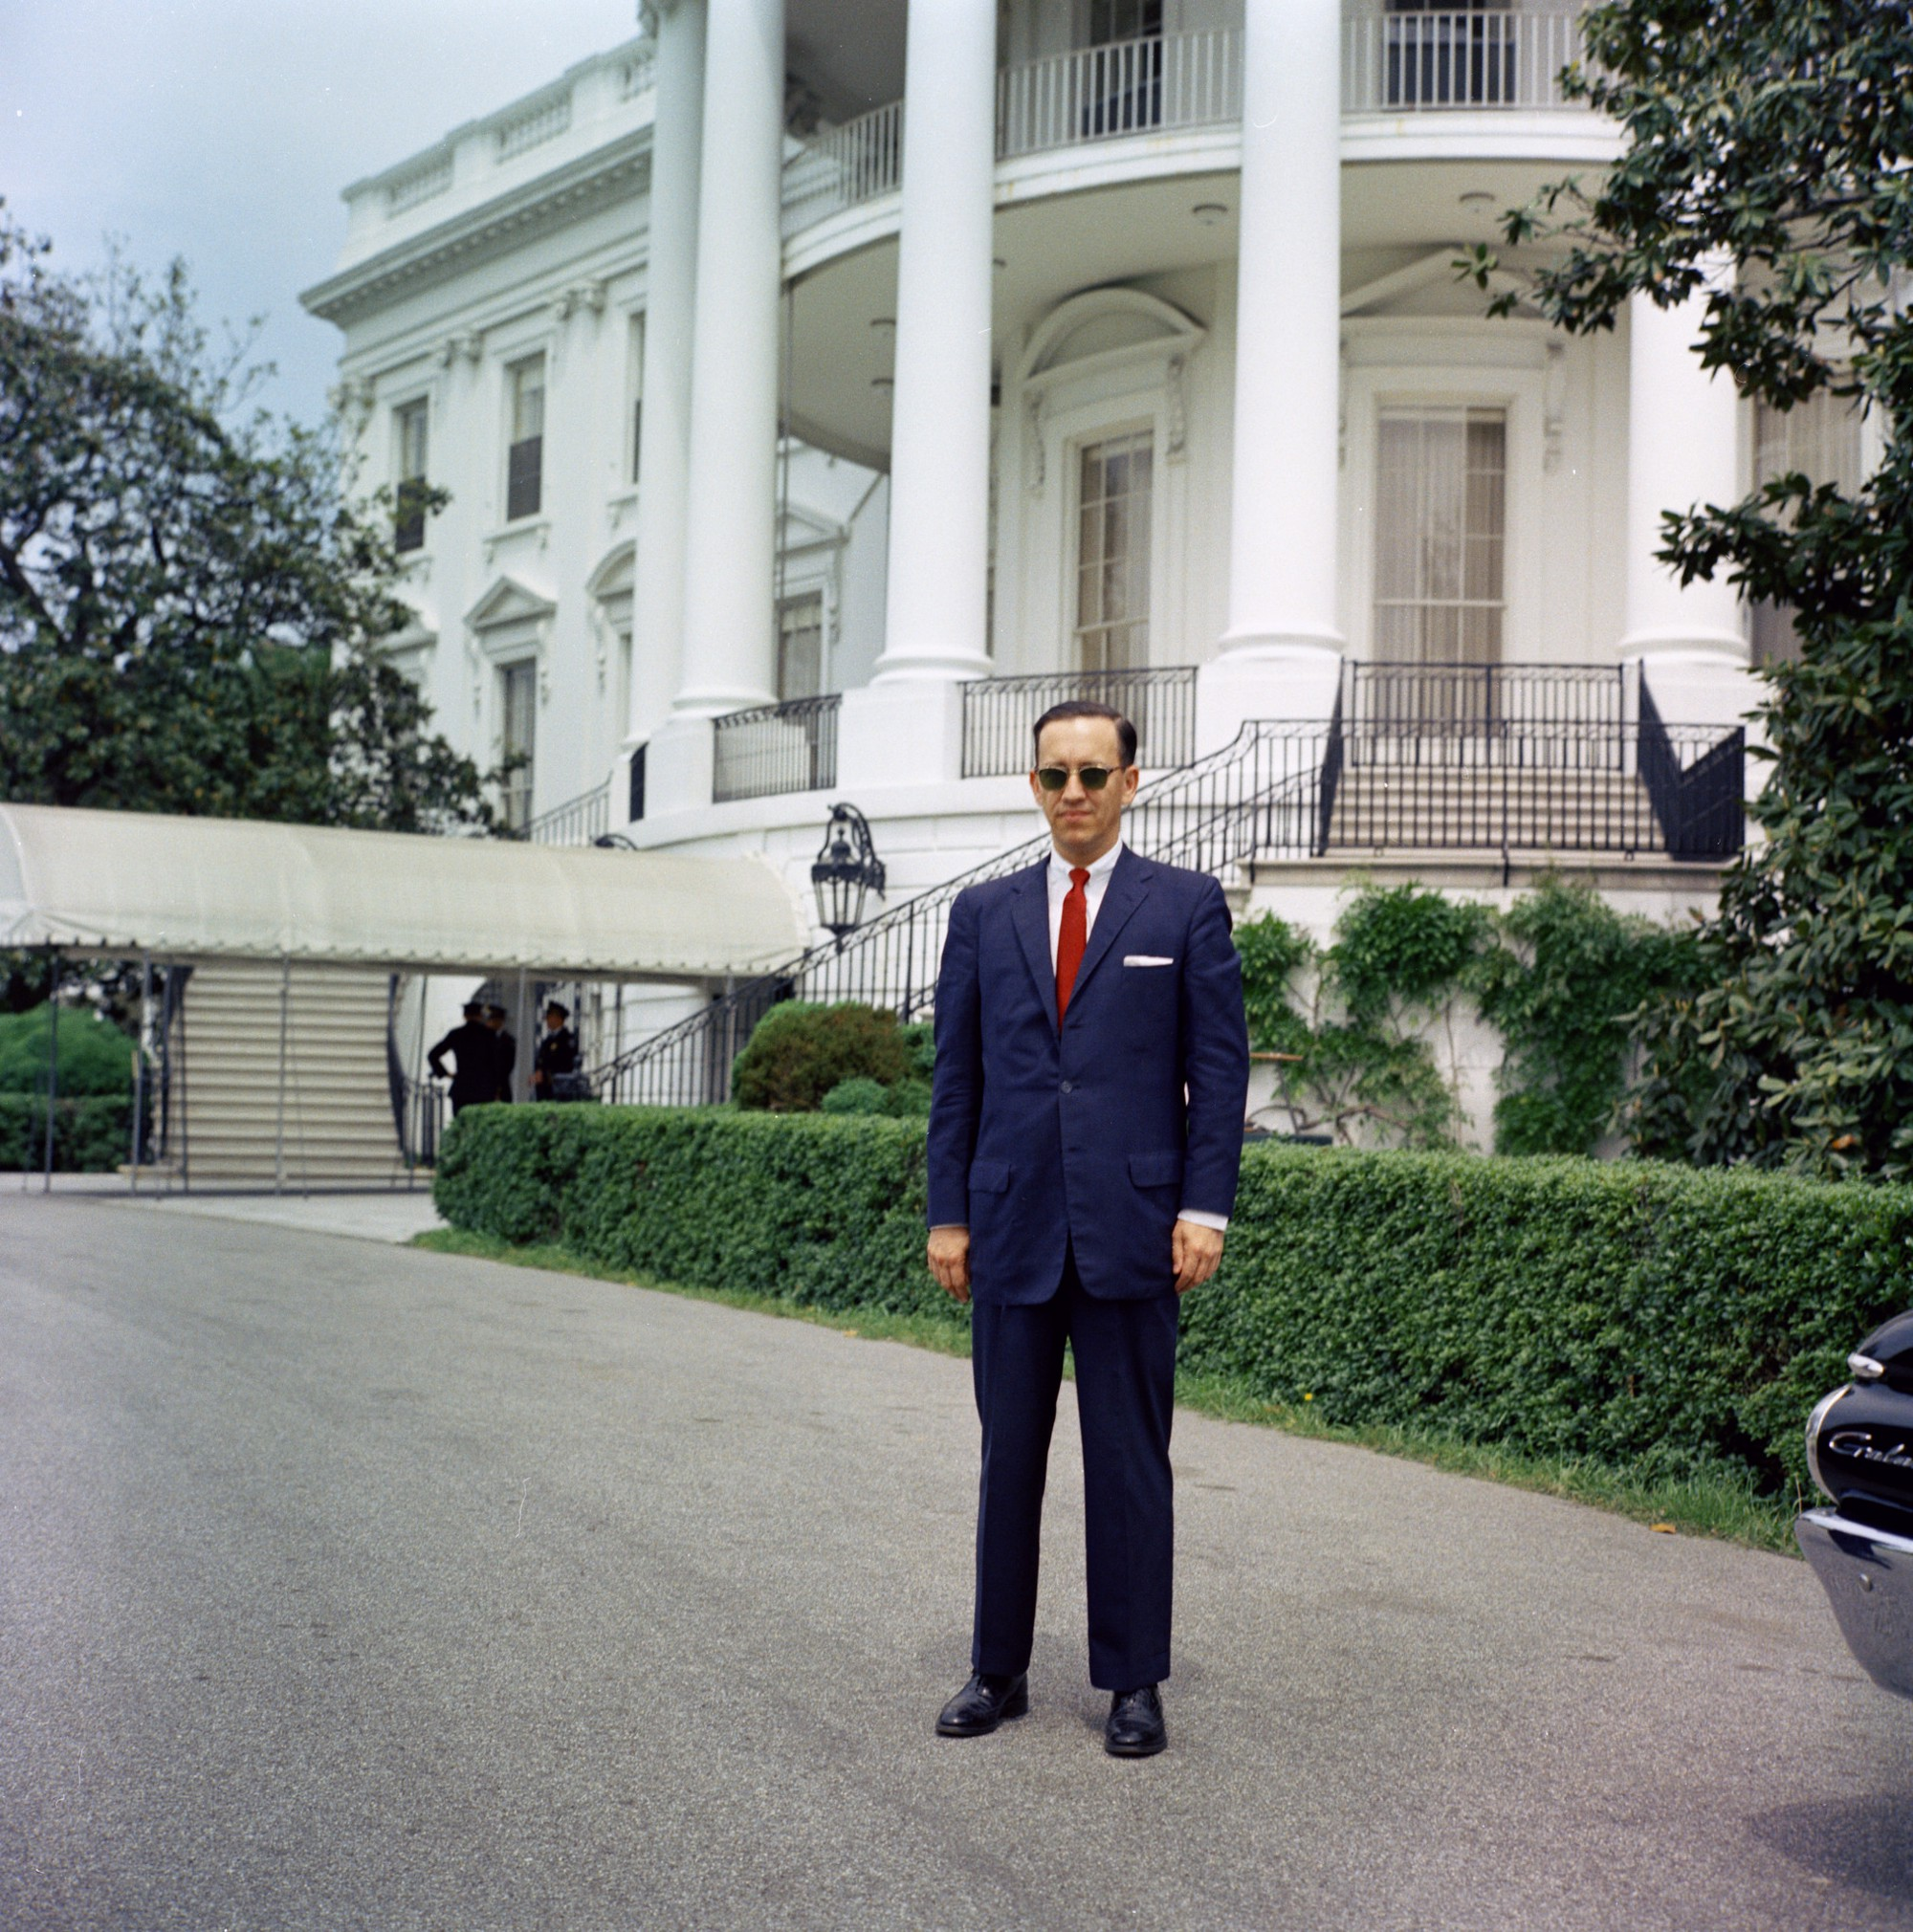 These refreshingly normal photos of the everyday JFK White House show how much things have changed